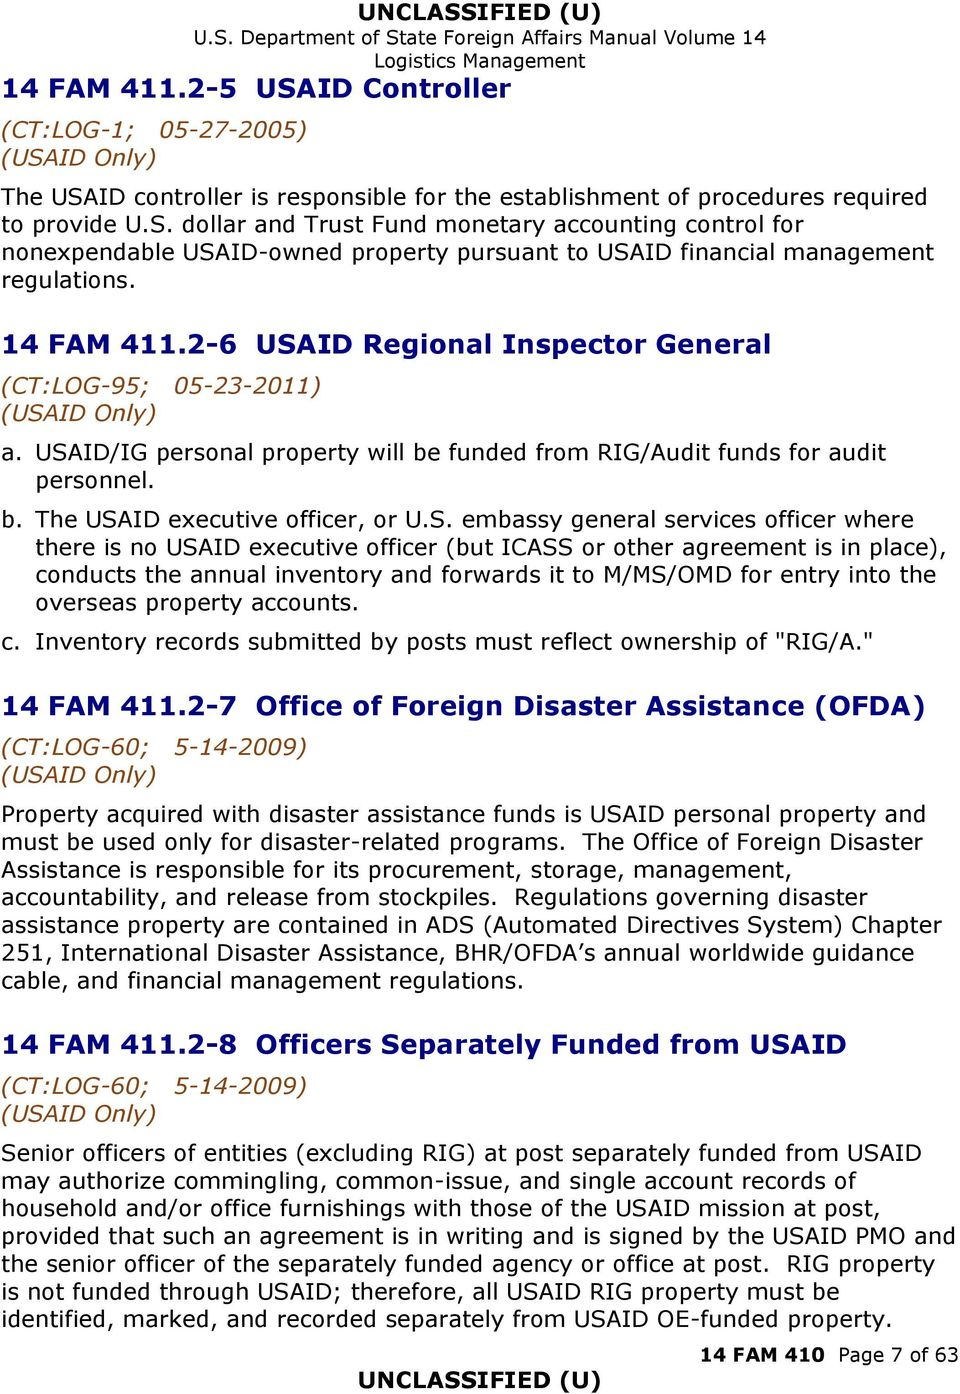 S. embassy general services officer where there is no USAID executive officer (but ICASS or other agreement is in place), conducts the annual inventory and forwards it to M/MS/OMD for entry into the